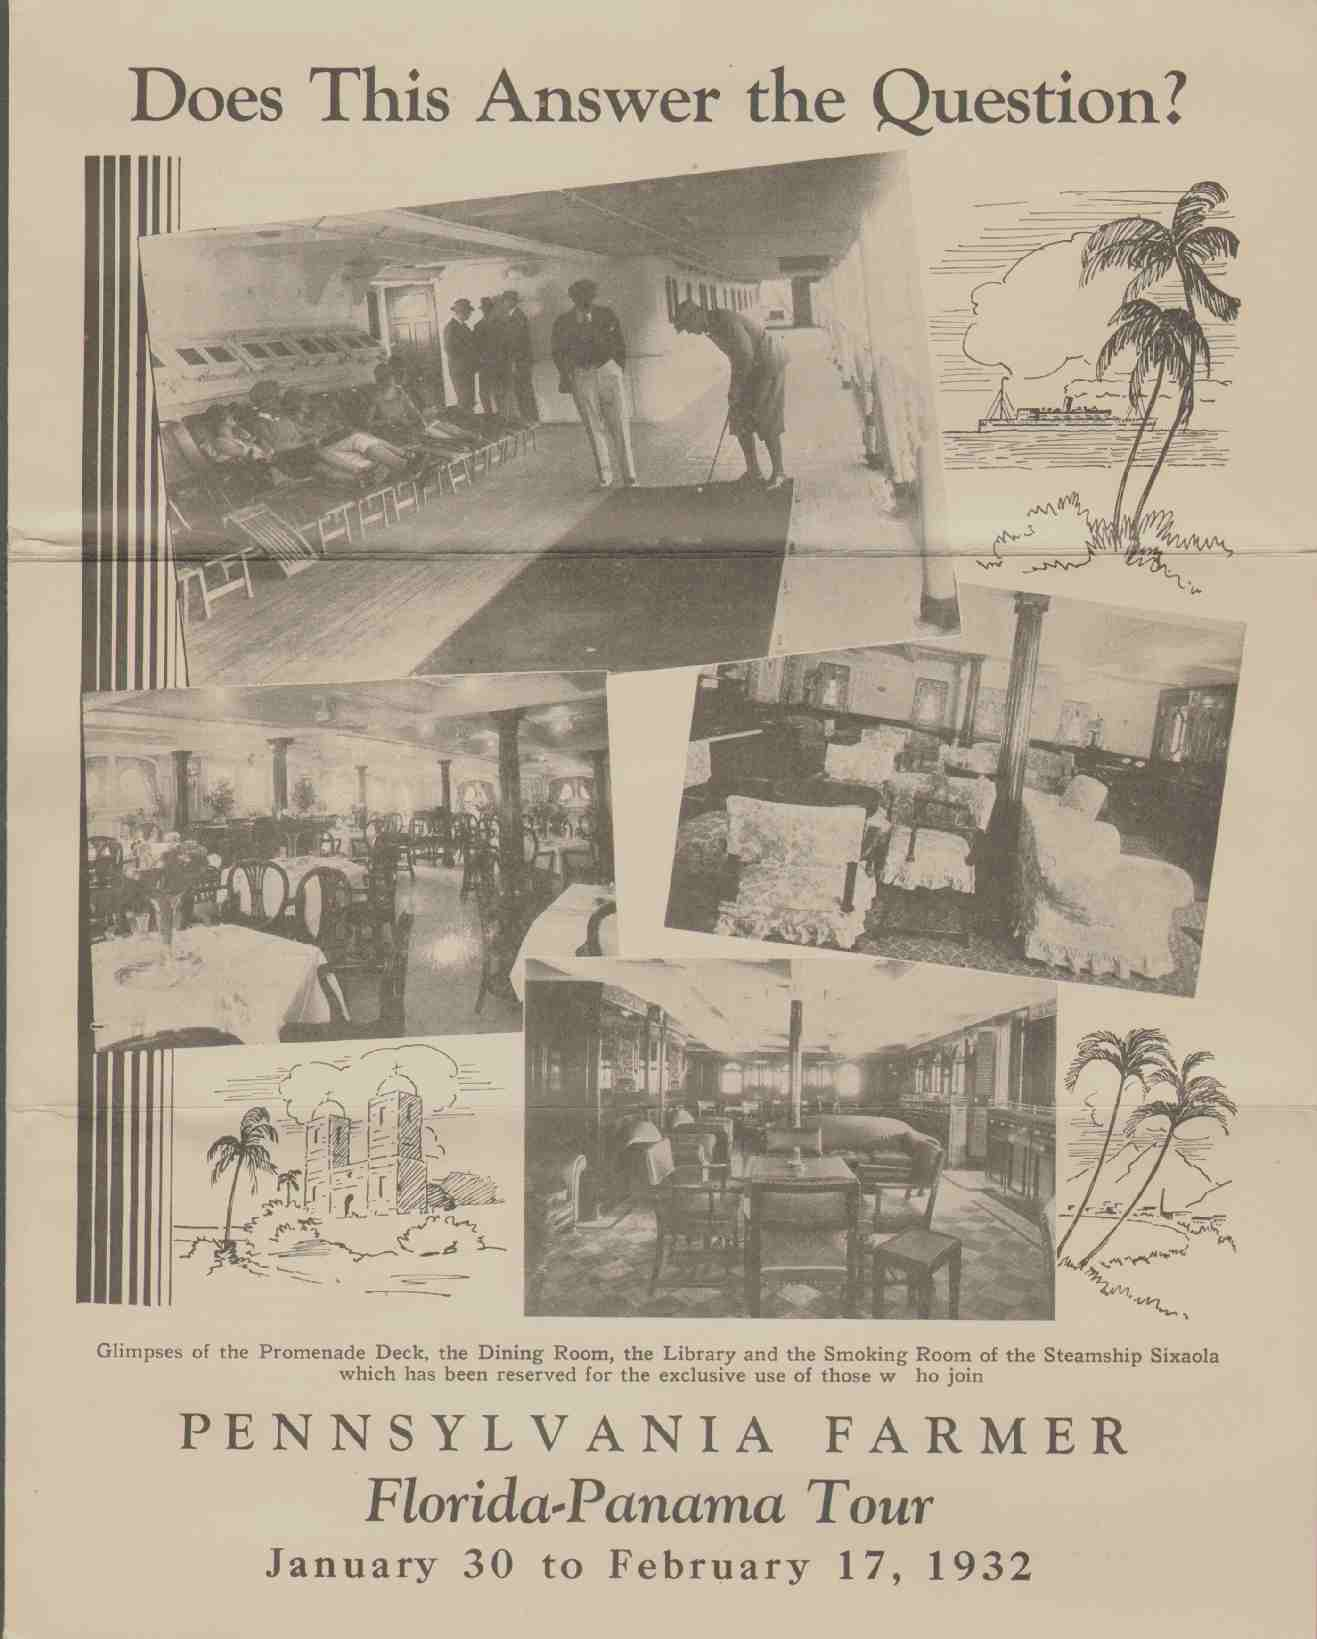 Image for DOES THIS ANSWER THE QUESTION?  Pennsylvania Farmer Florida-Panama Tour January 30 to February 17, 1932